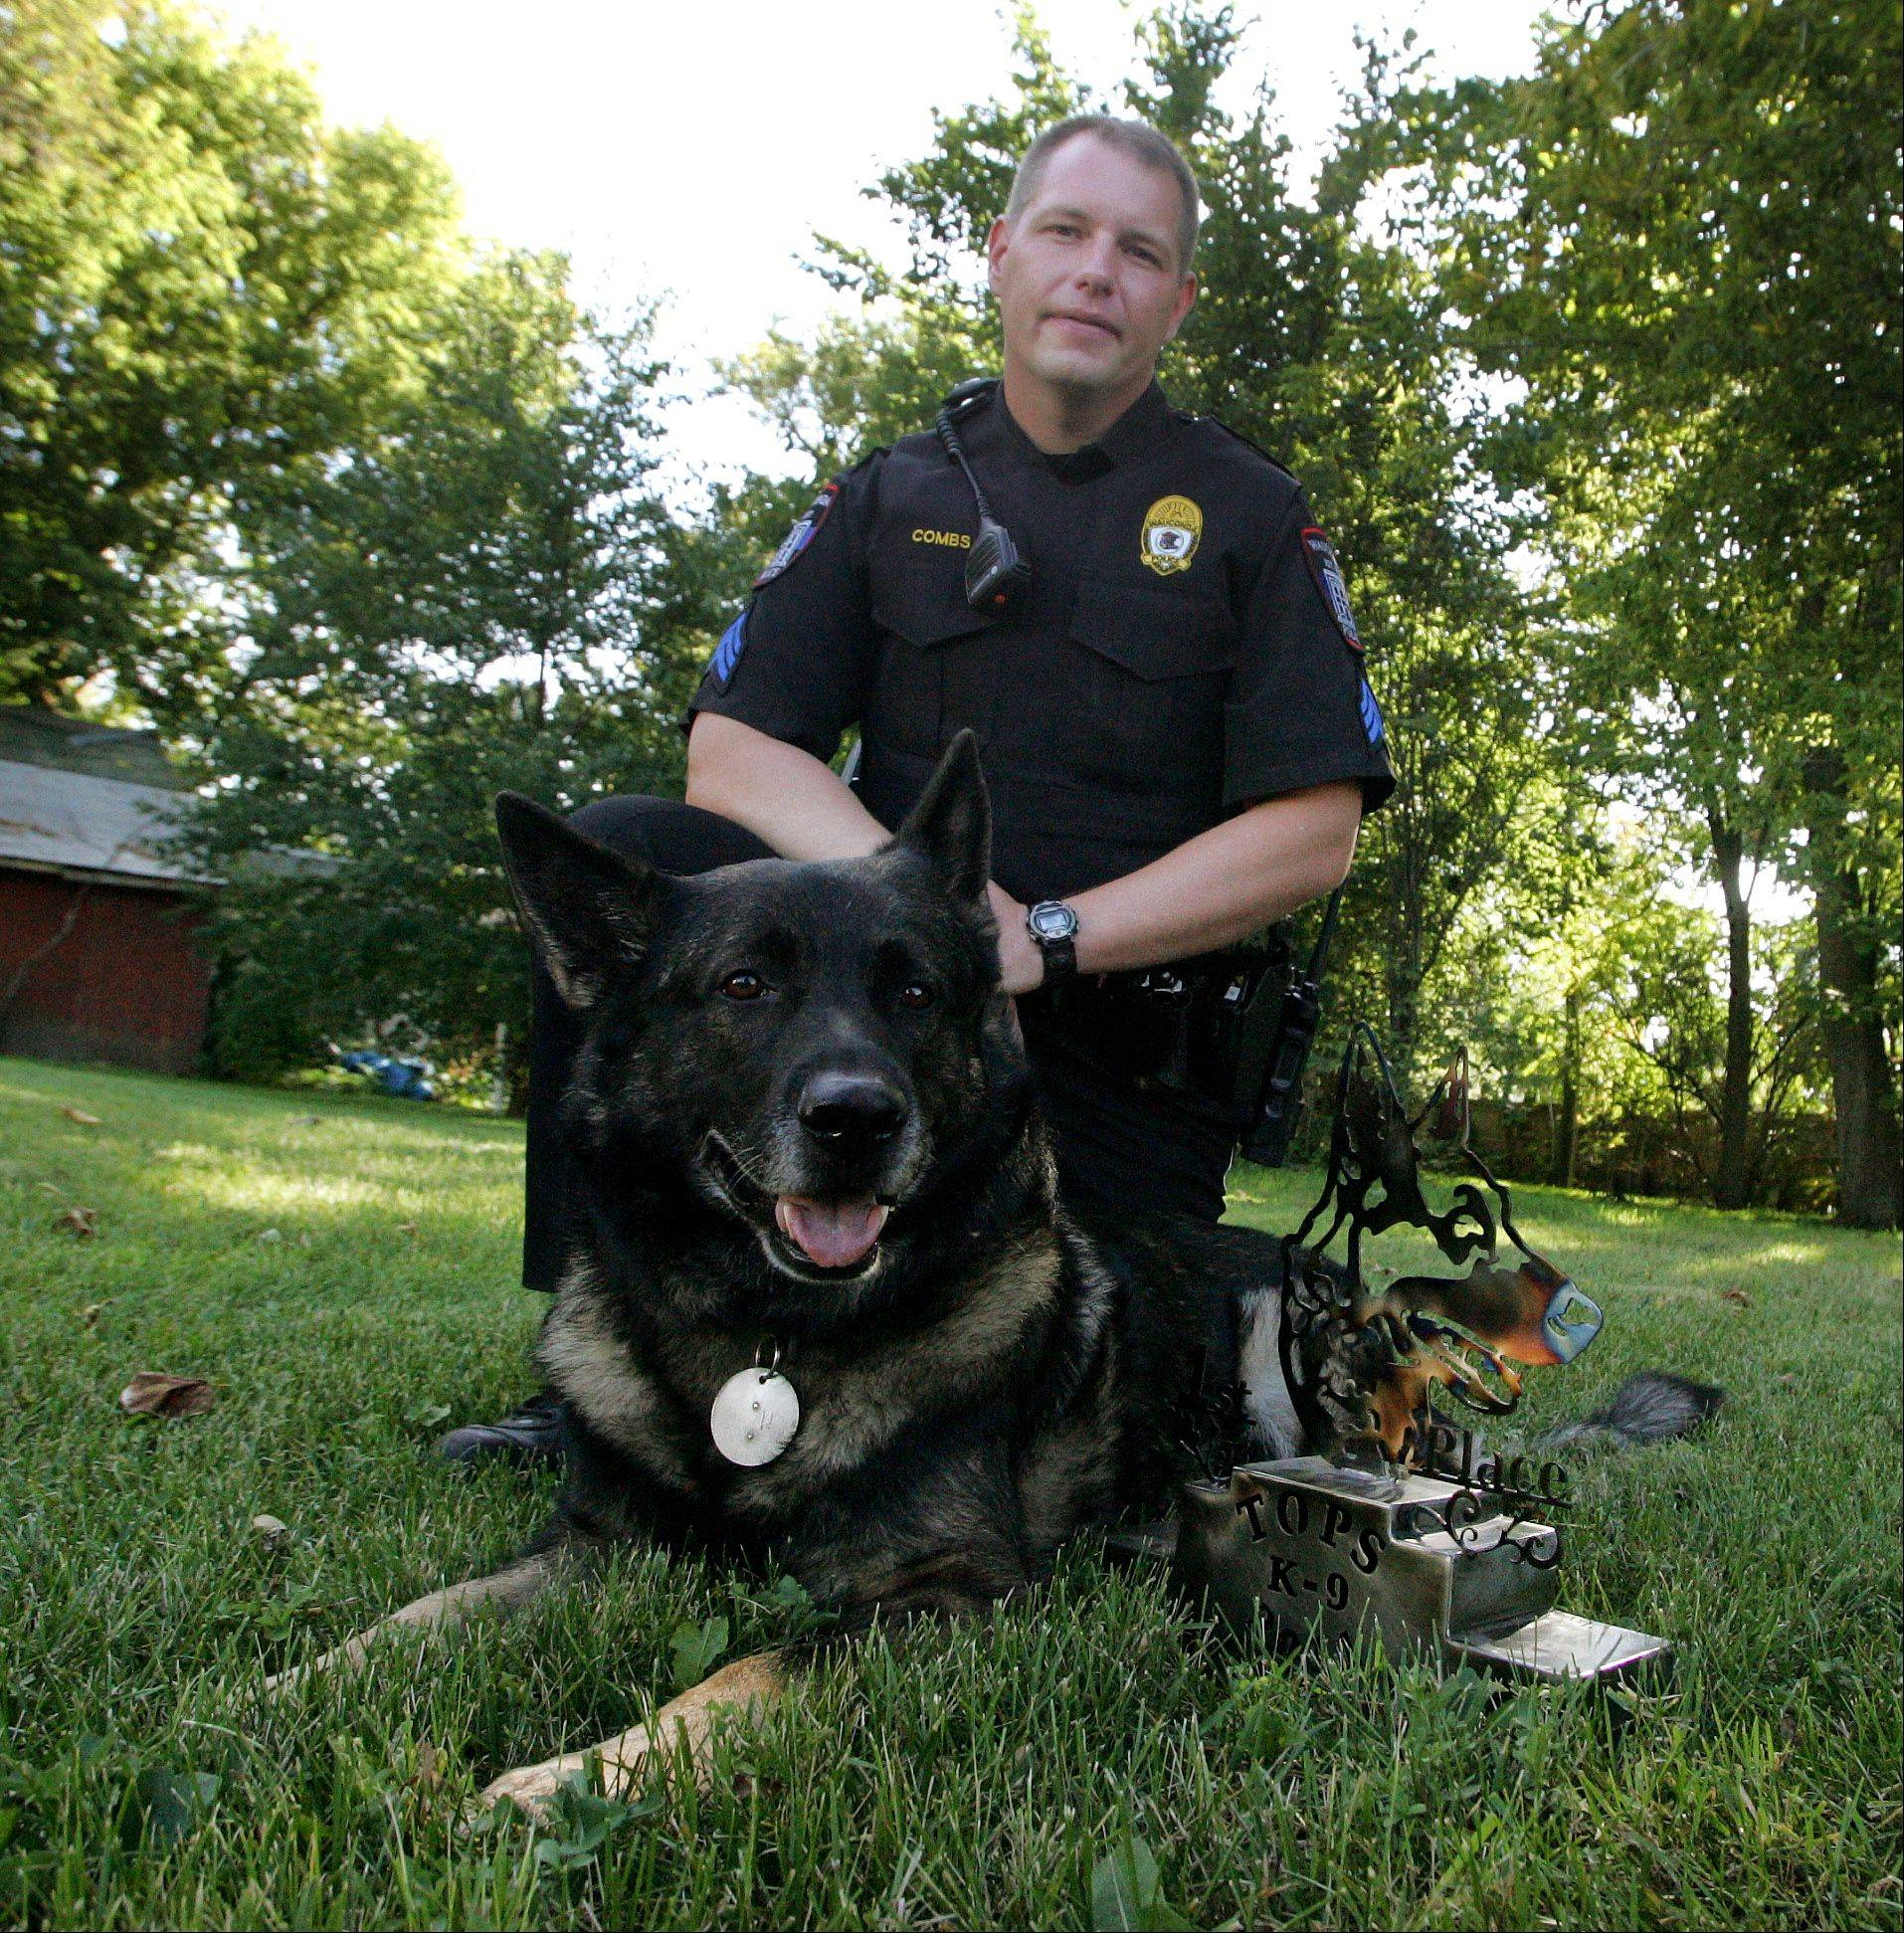 Sgt. John Combs and his canine partner, Maxx.